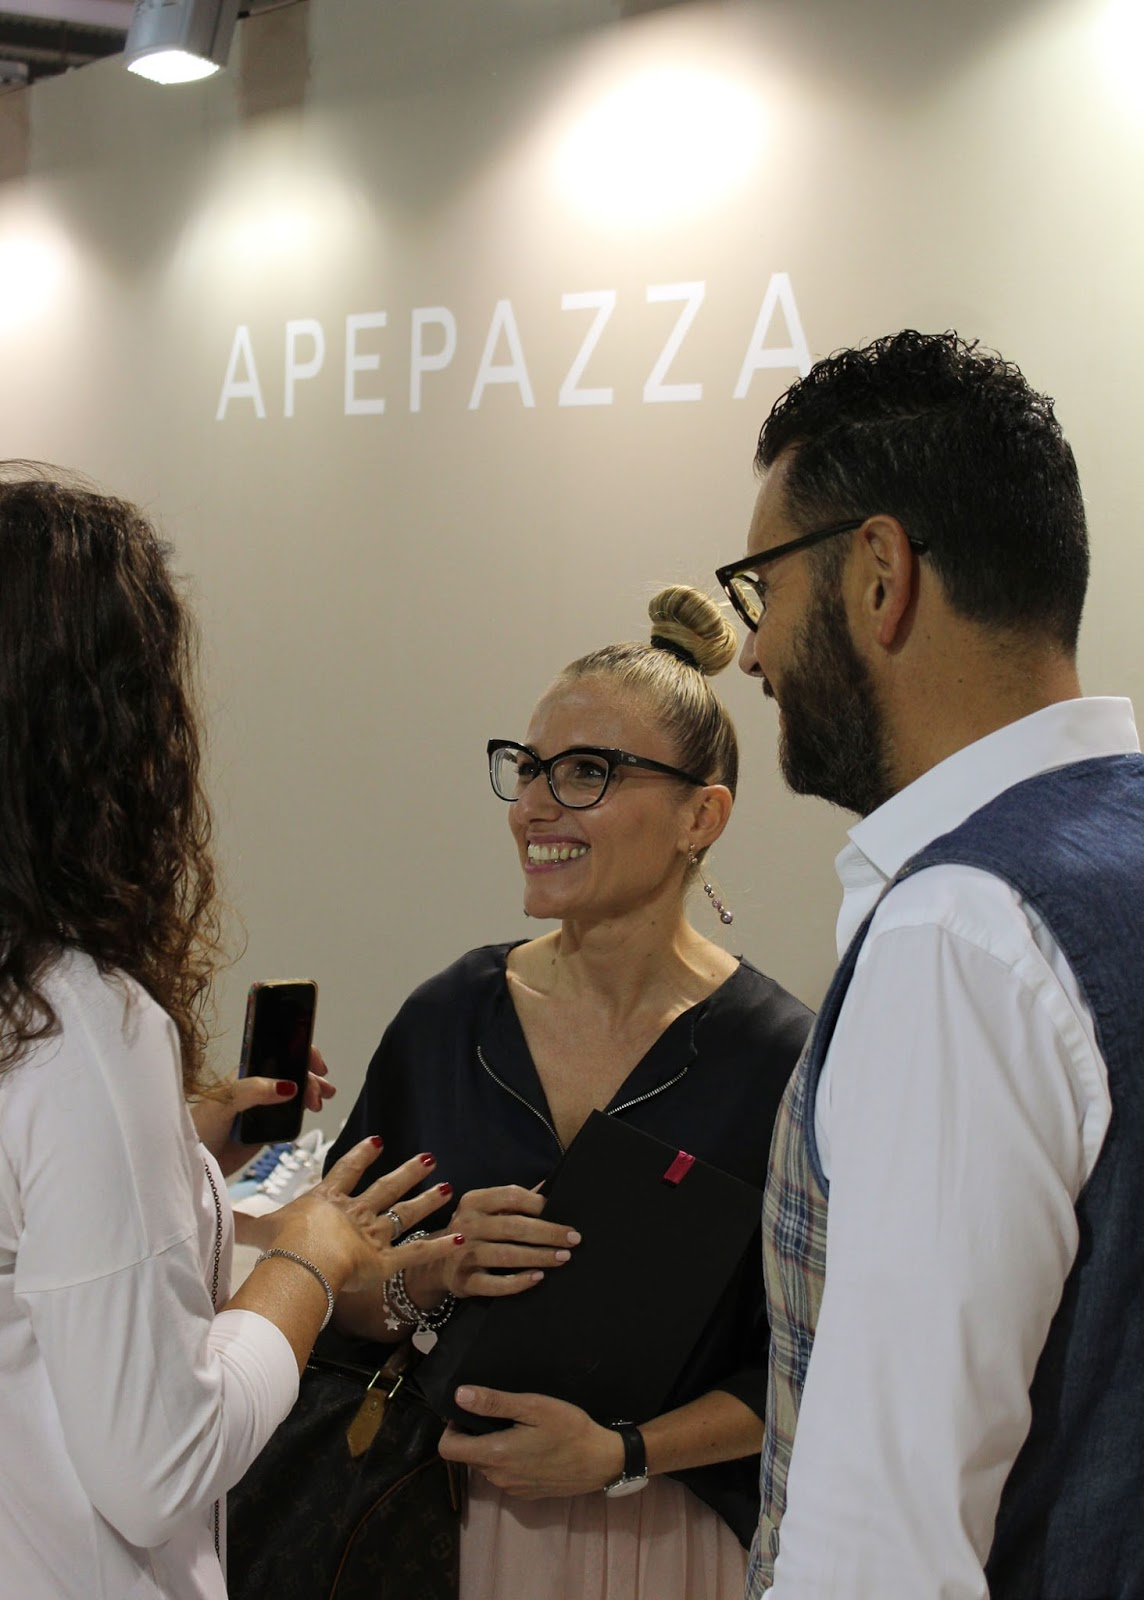 Eniwhere Fashion - Apepazza collection - Micam 2016